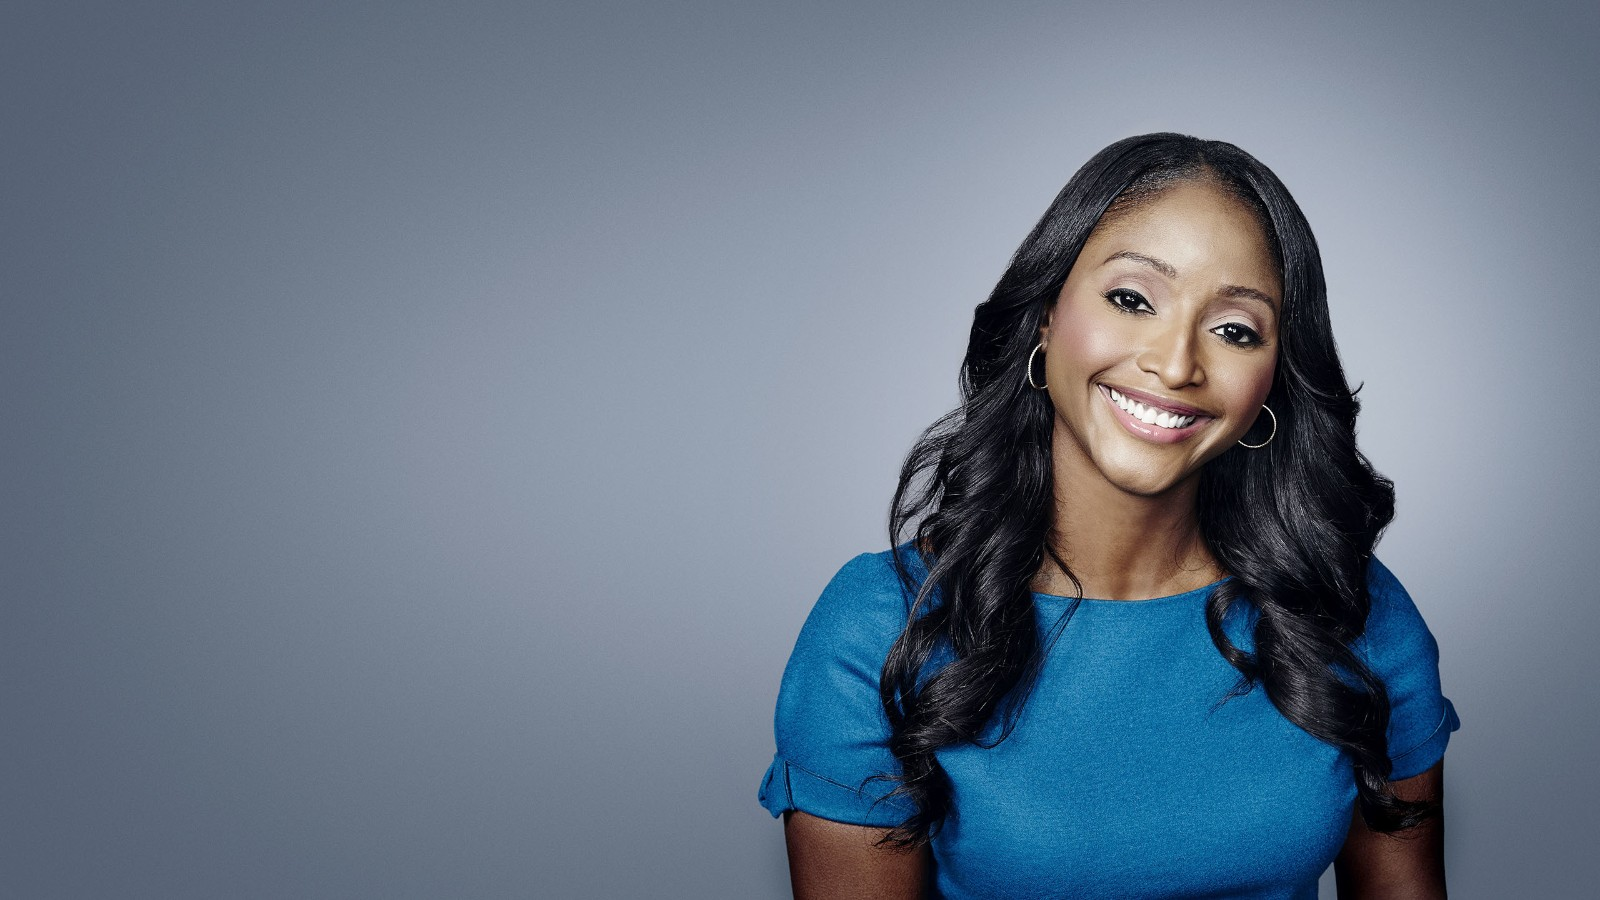 CNN Profiles - Isha Sesay - Anchor and Correspondent - CNN - photo#24